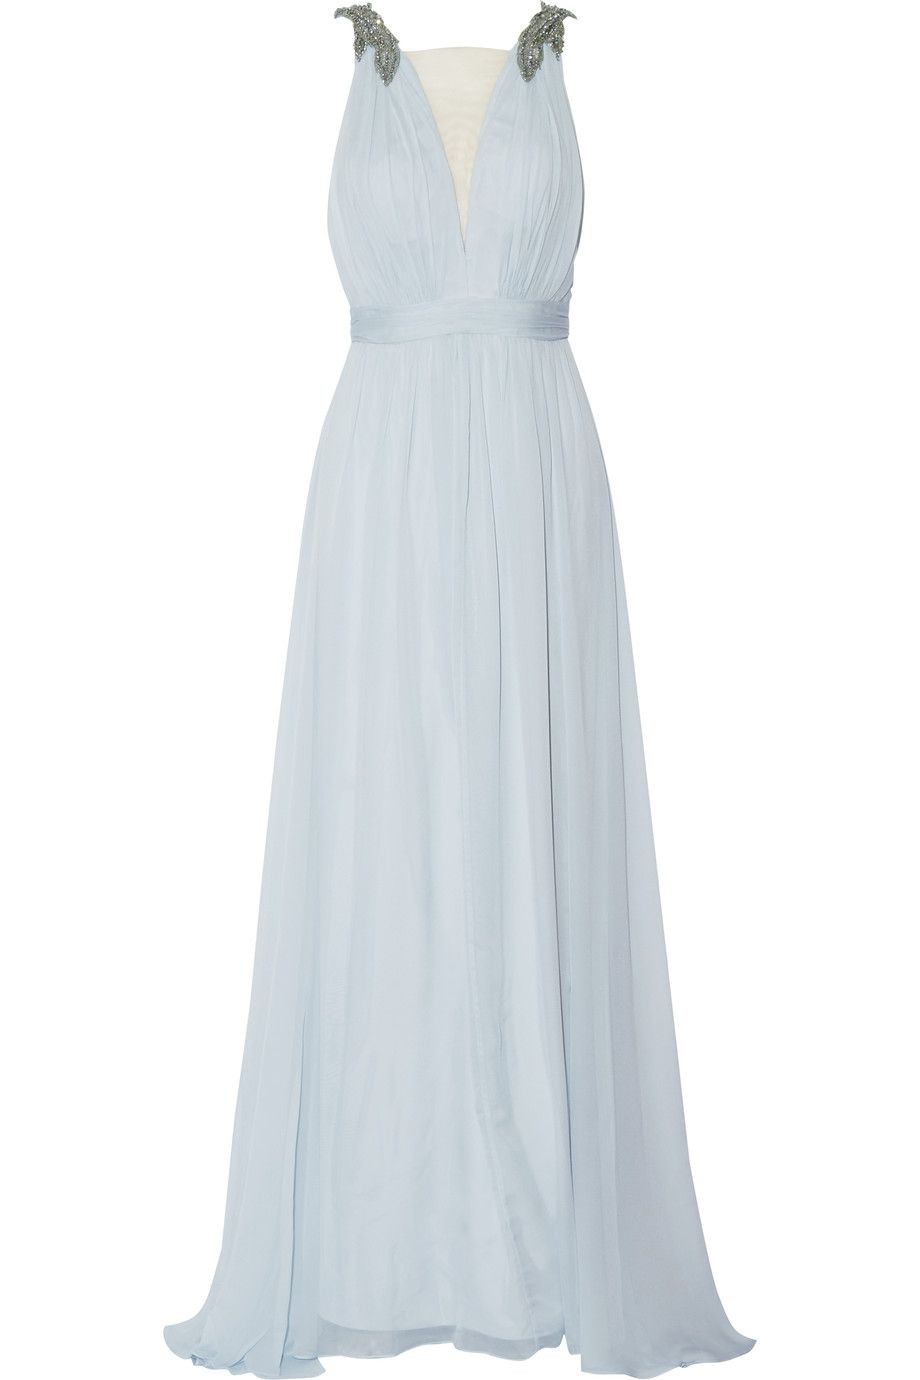 Shop on-sale Marchesa Notte Embellished silk gown. Browse other ...